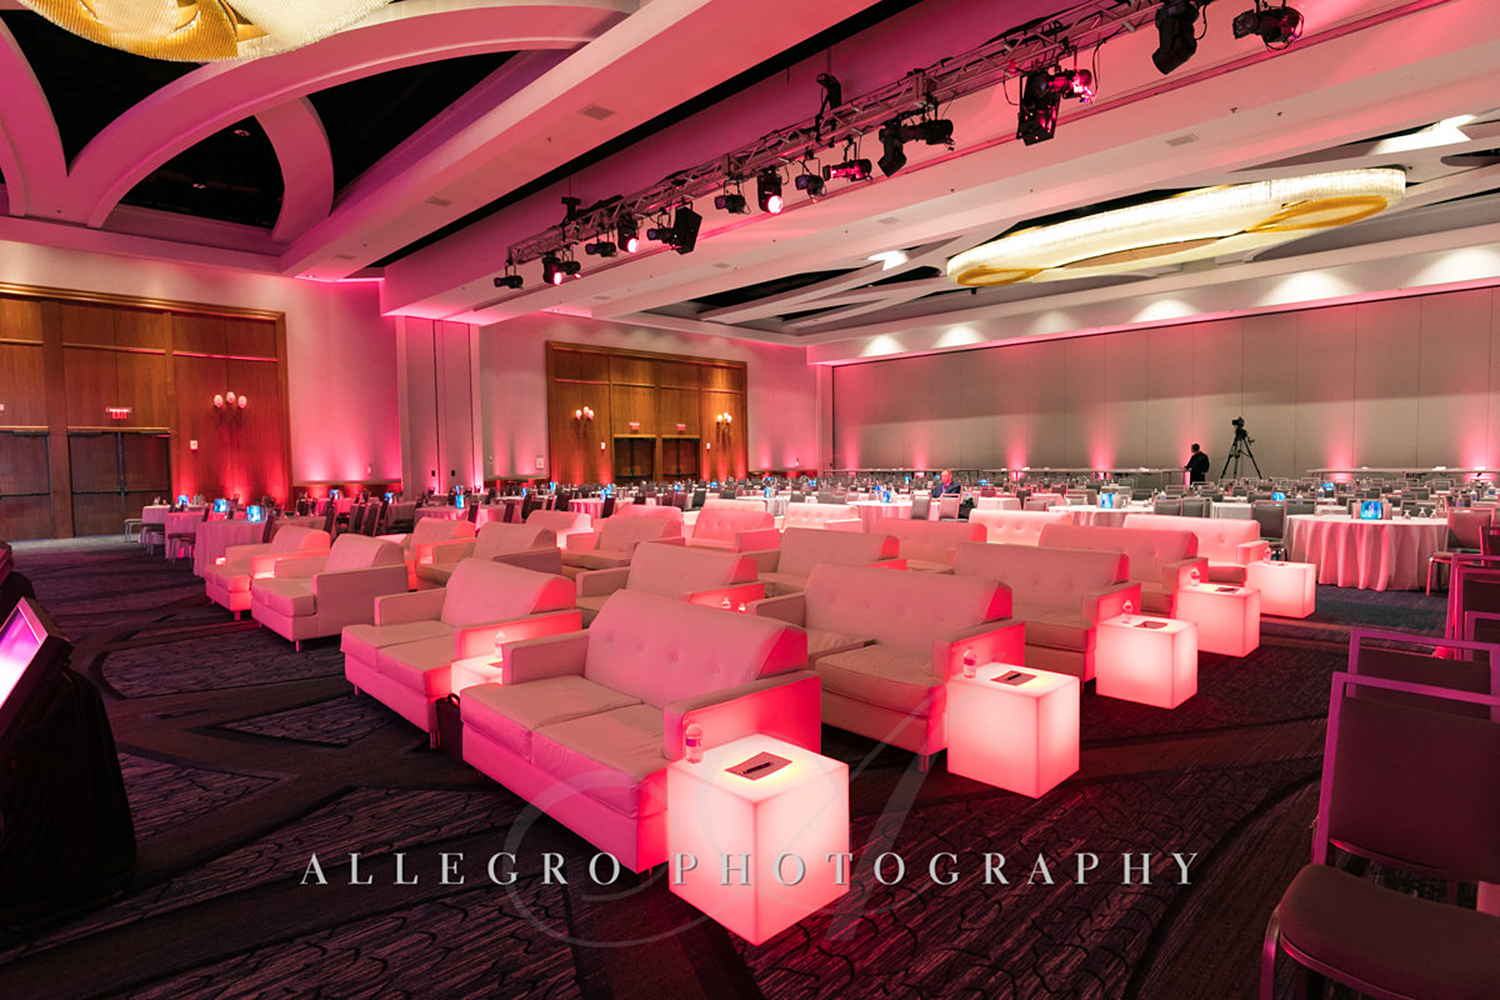 05_Corporate Meetings Conference Seating_AE Events.jpg